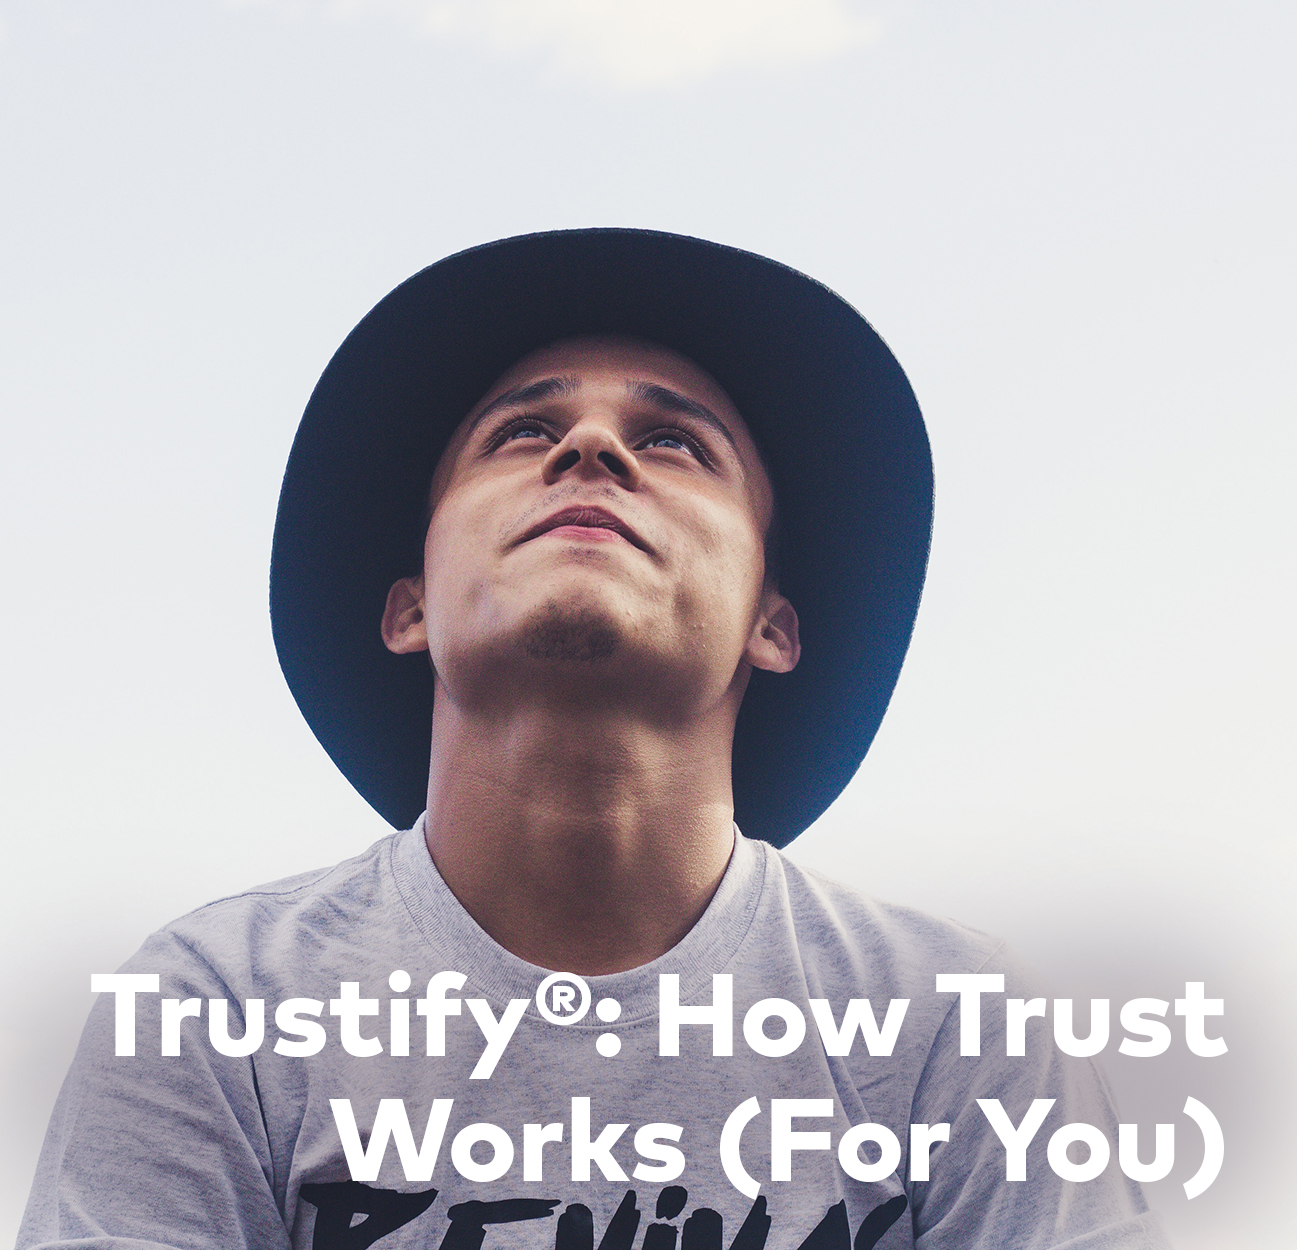 2_Mext_Consulting_Firm_Melbourne_Trust_Trustify_Your_HTW.jpg